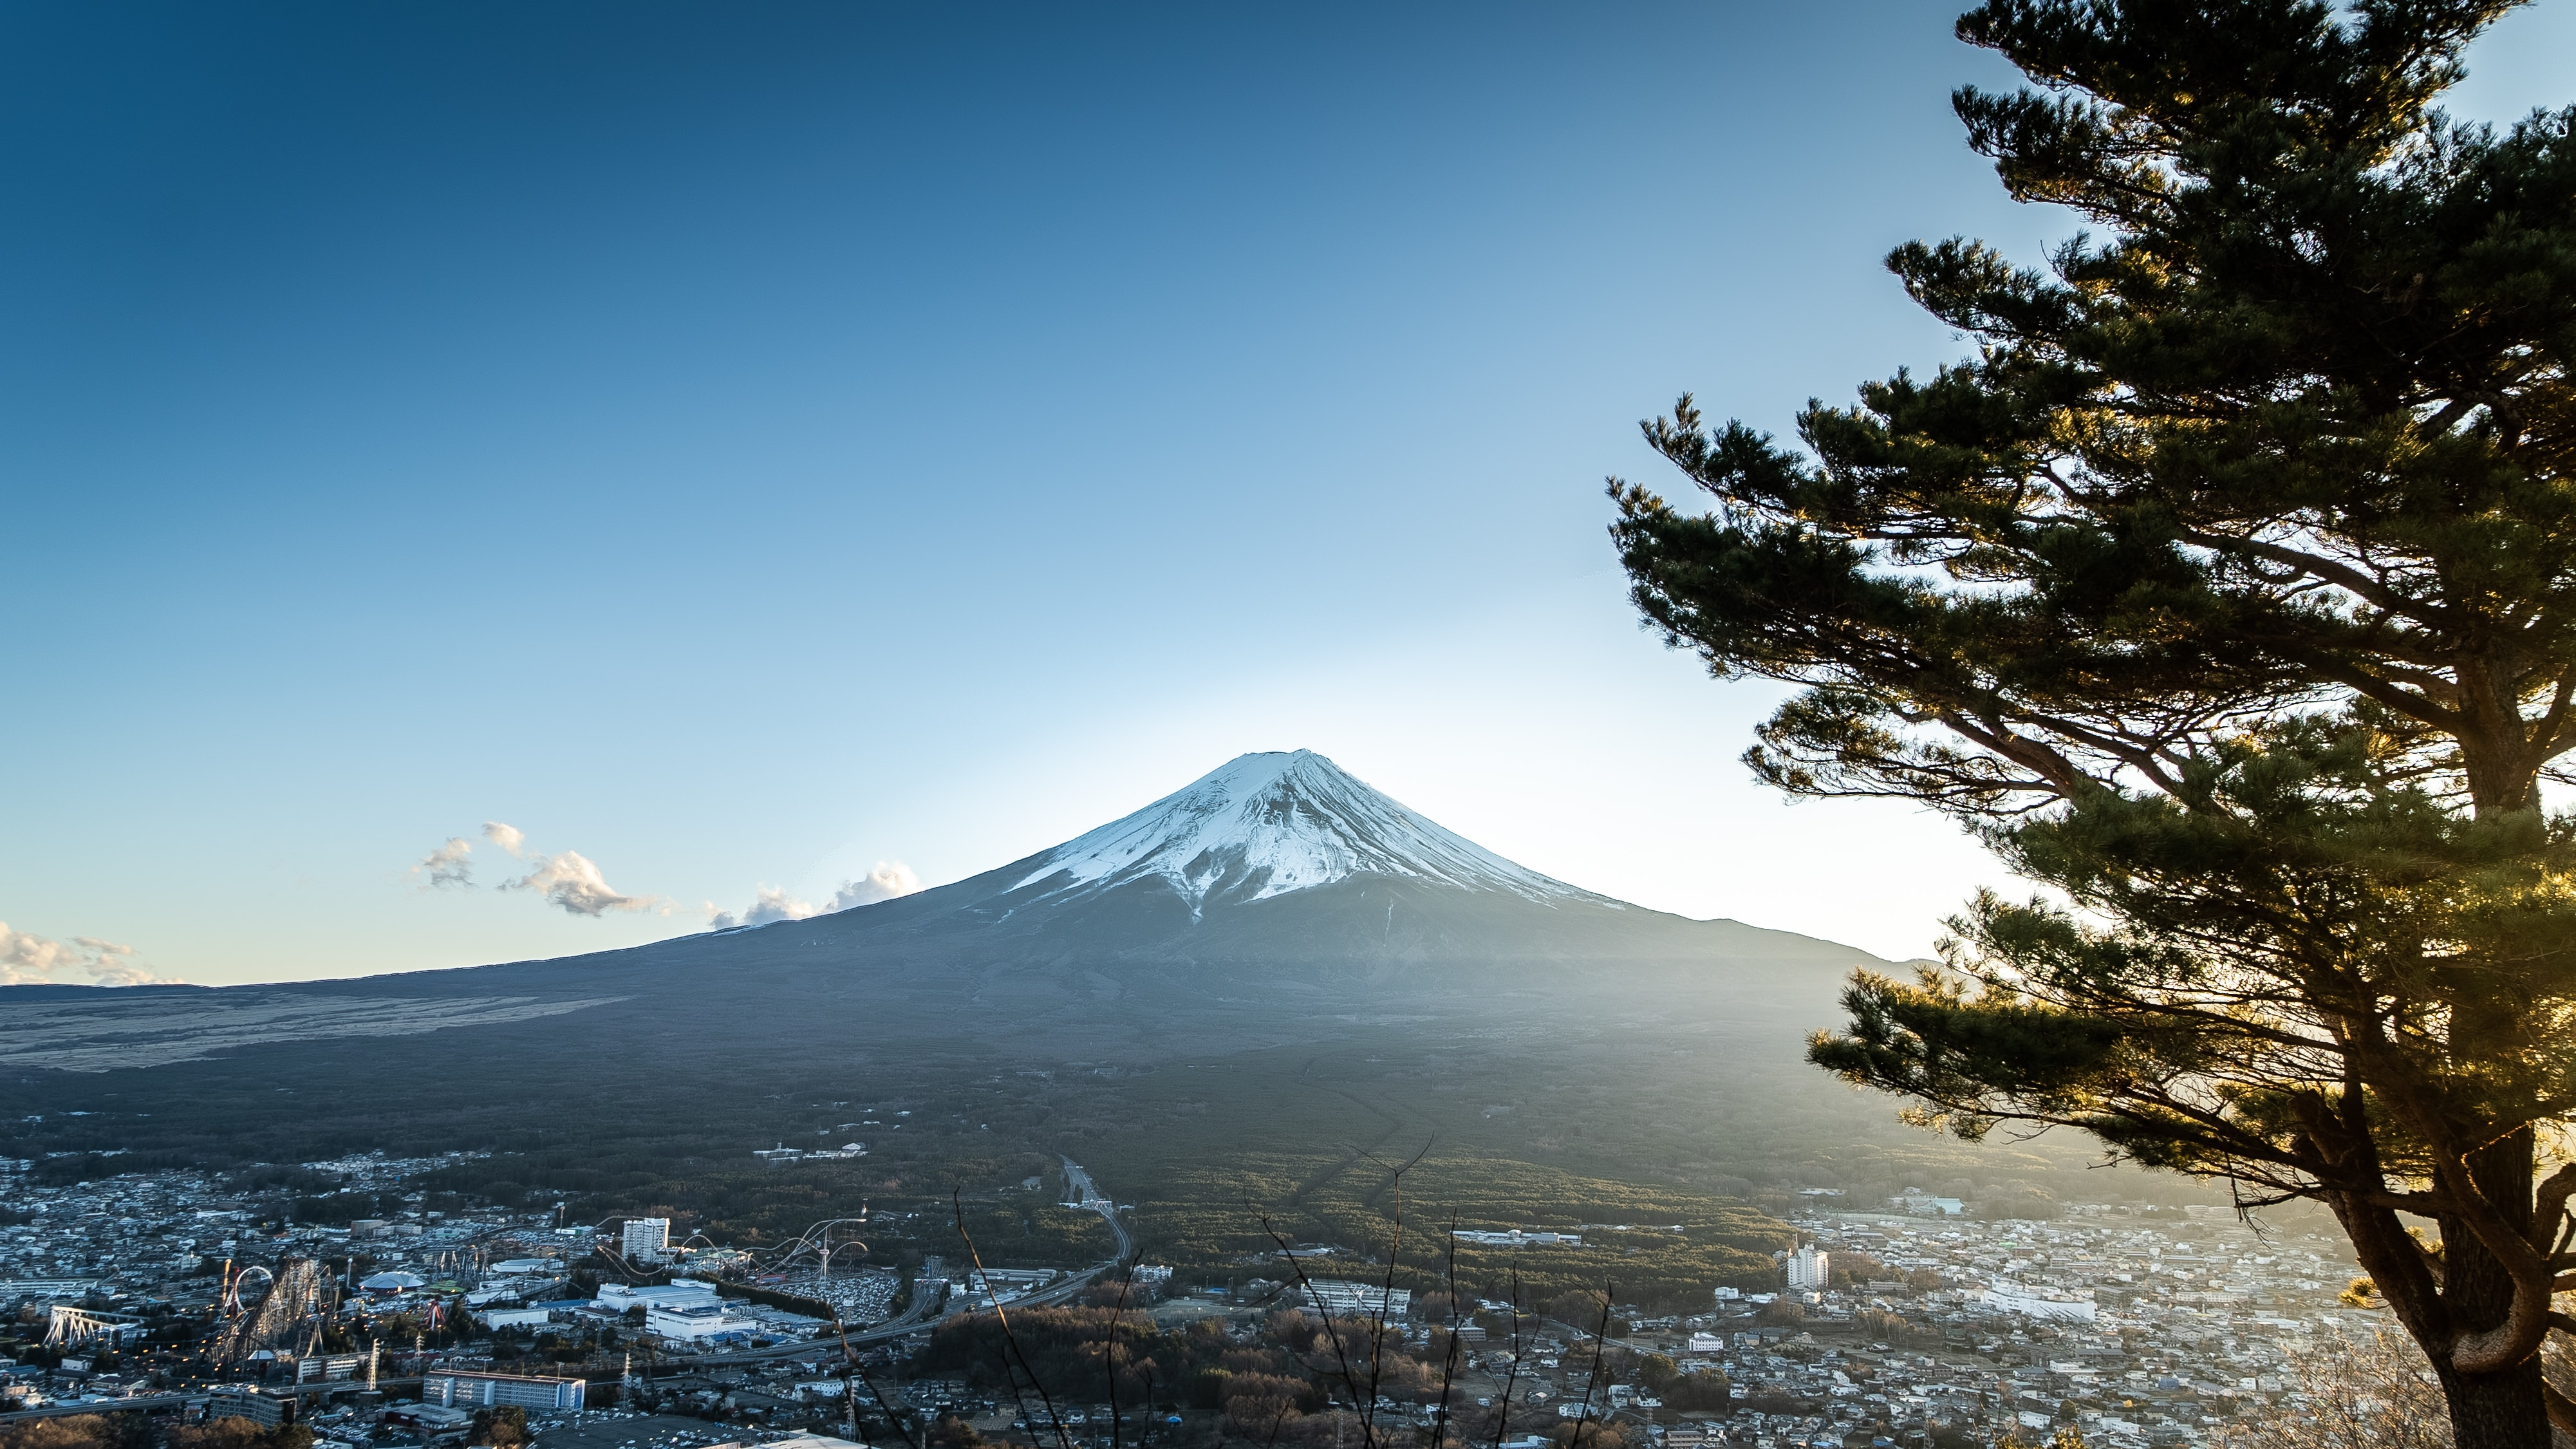 landscape photography of Mount Fuji in Japan during daytime